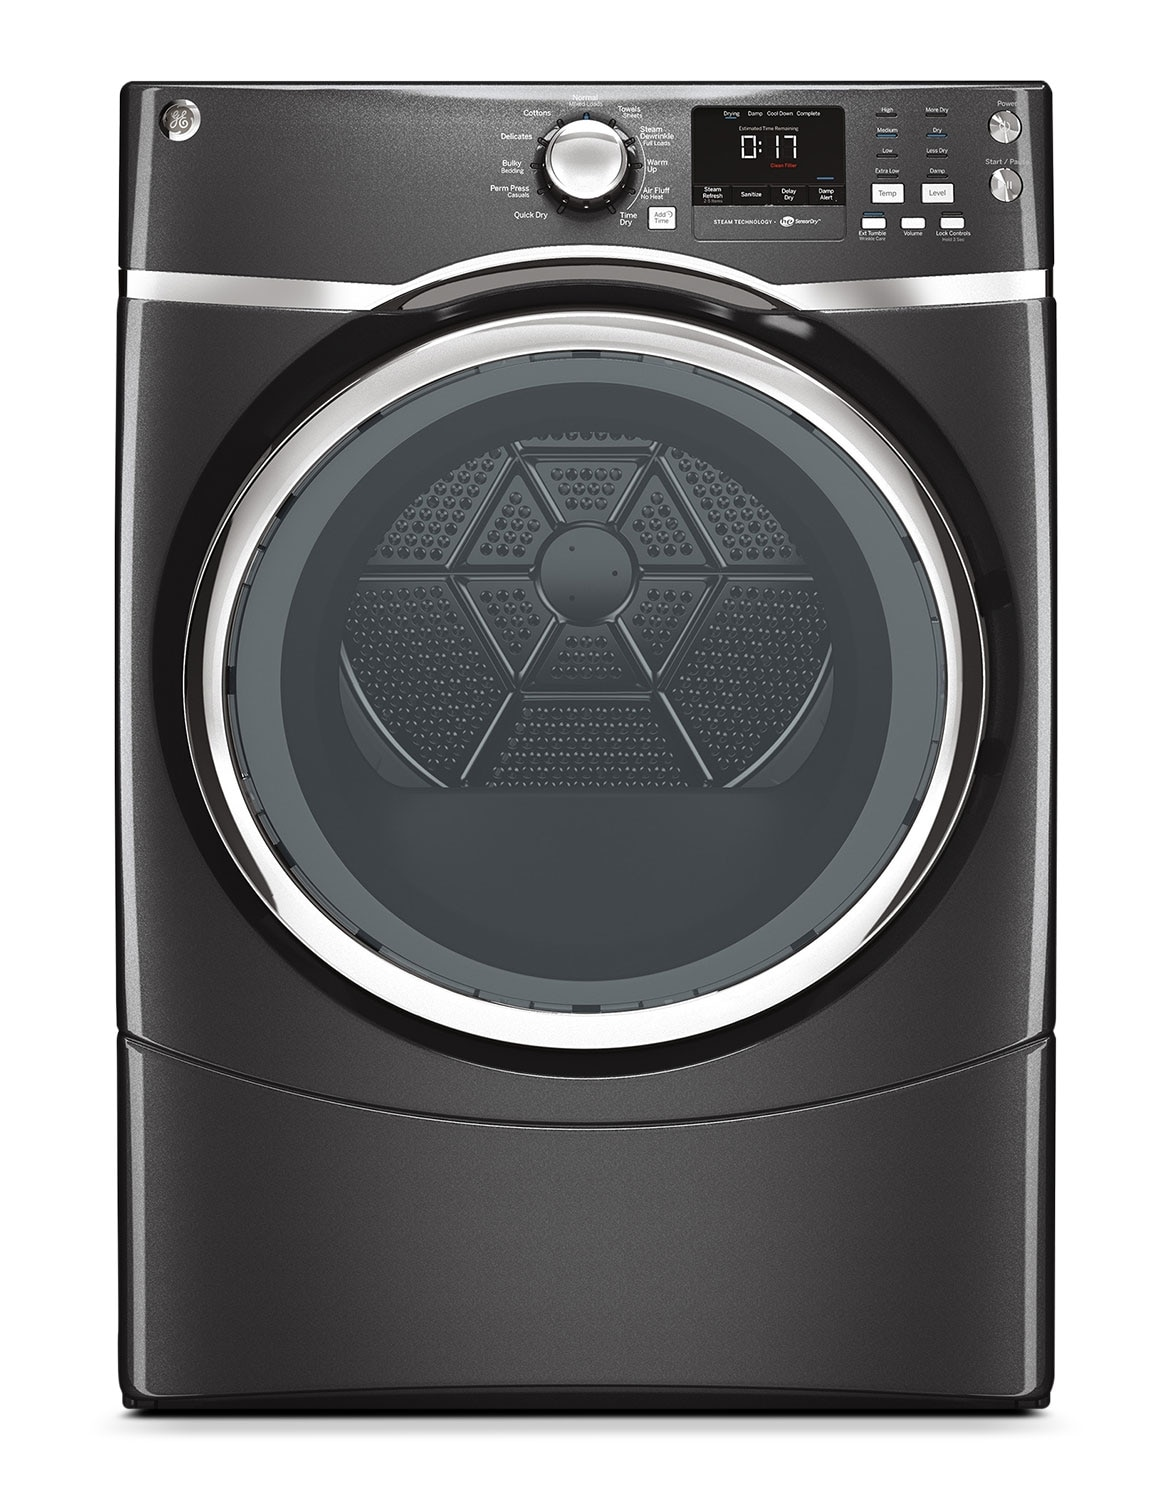 Washers and Dryers - GE Diamond Grey Gas Dryer (7.5 Cu. Ft.) - GFMS175GHDG